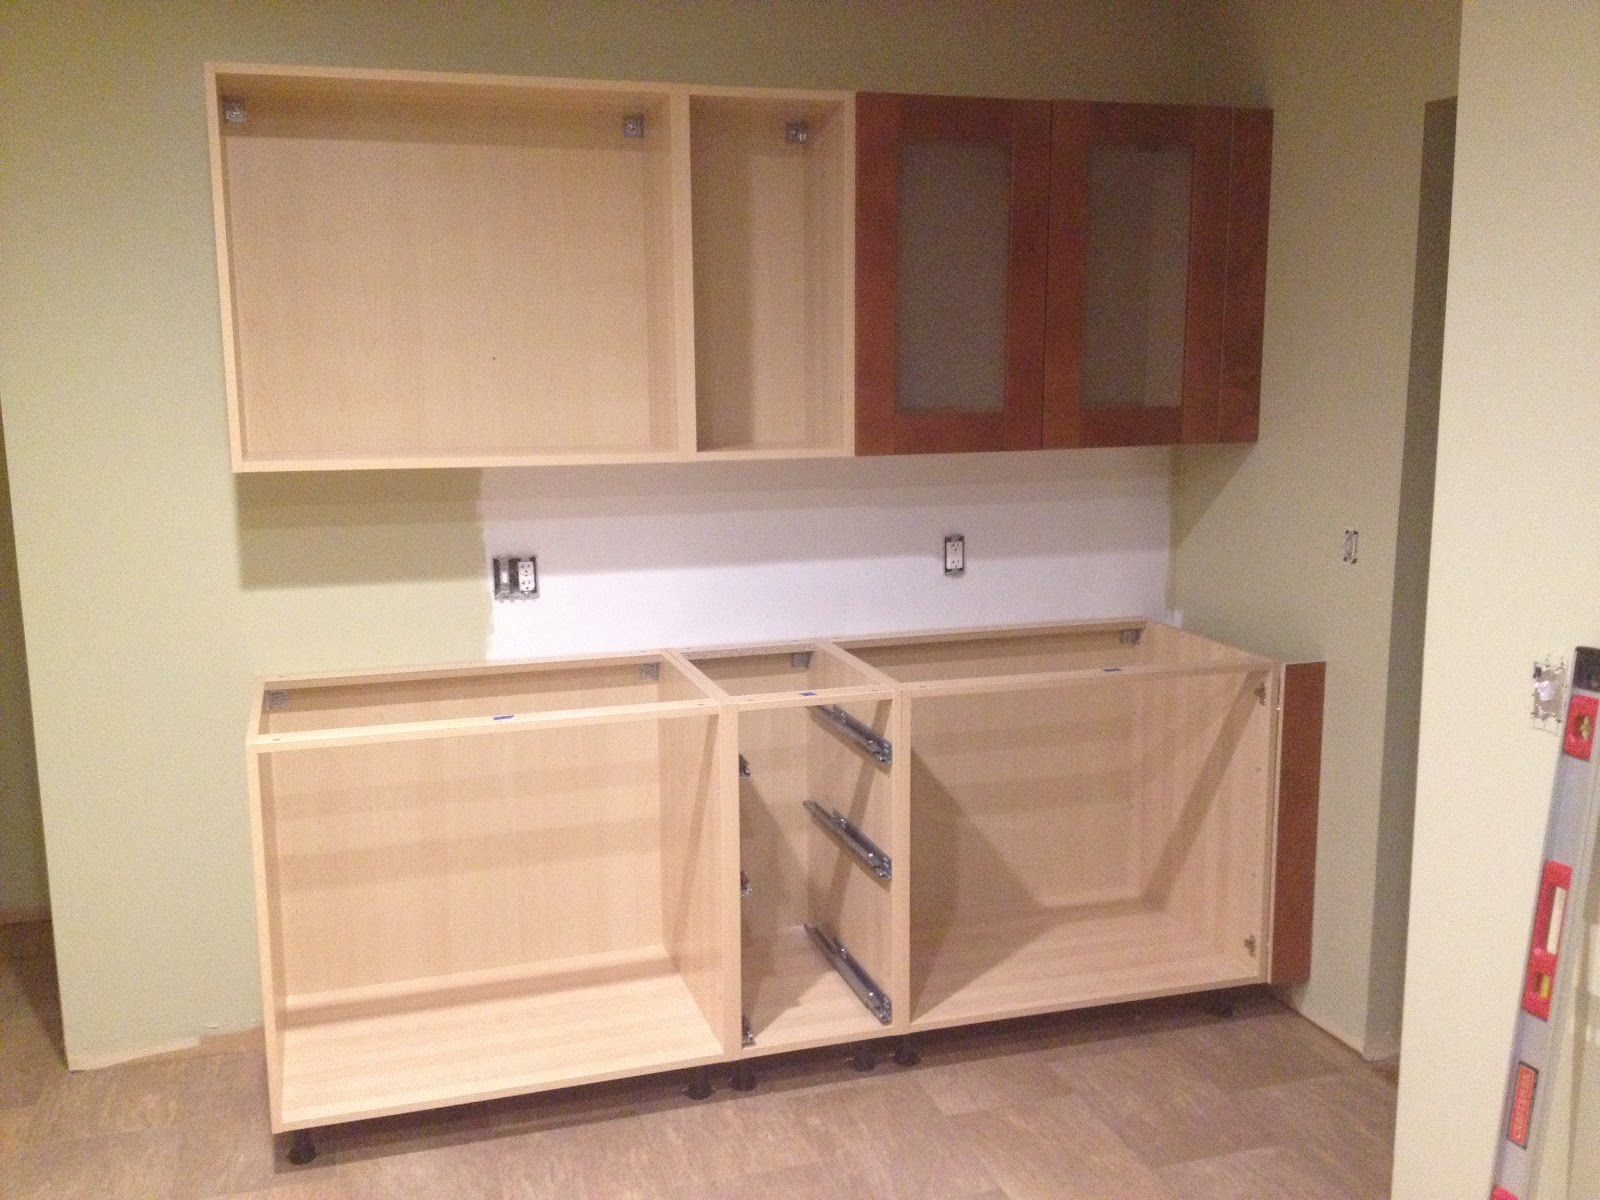 IKEA Kitchen Cabinets Ledger Board